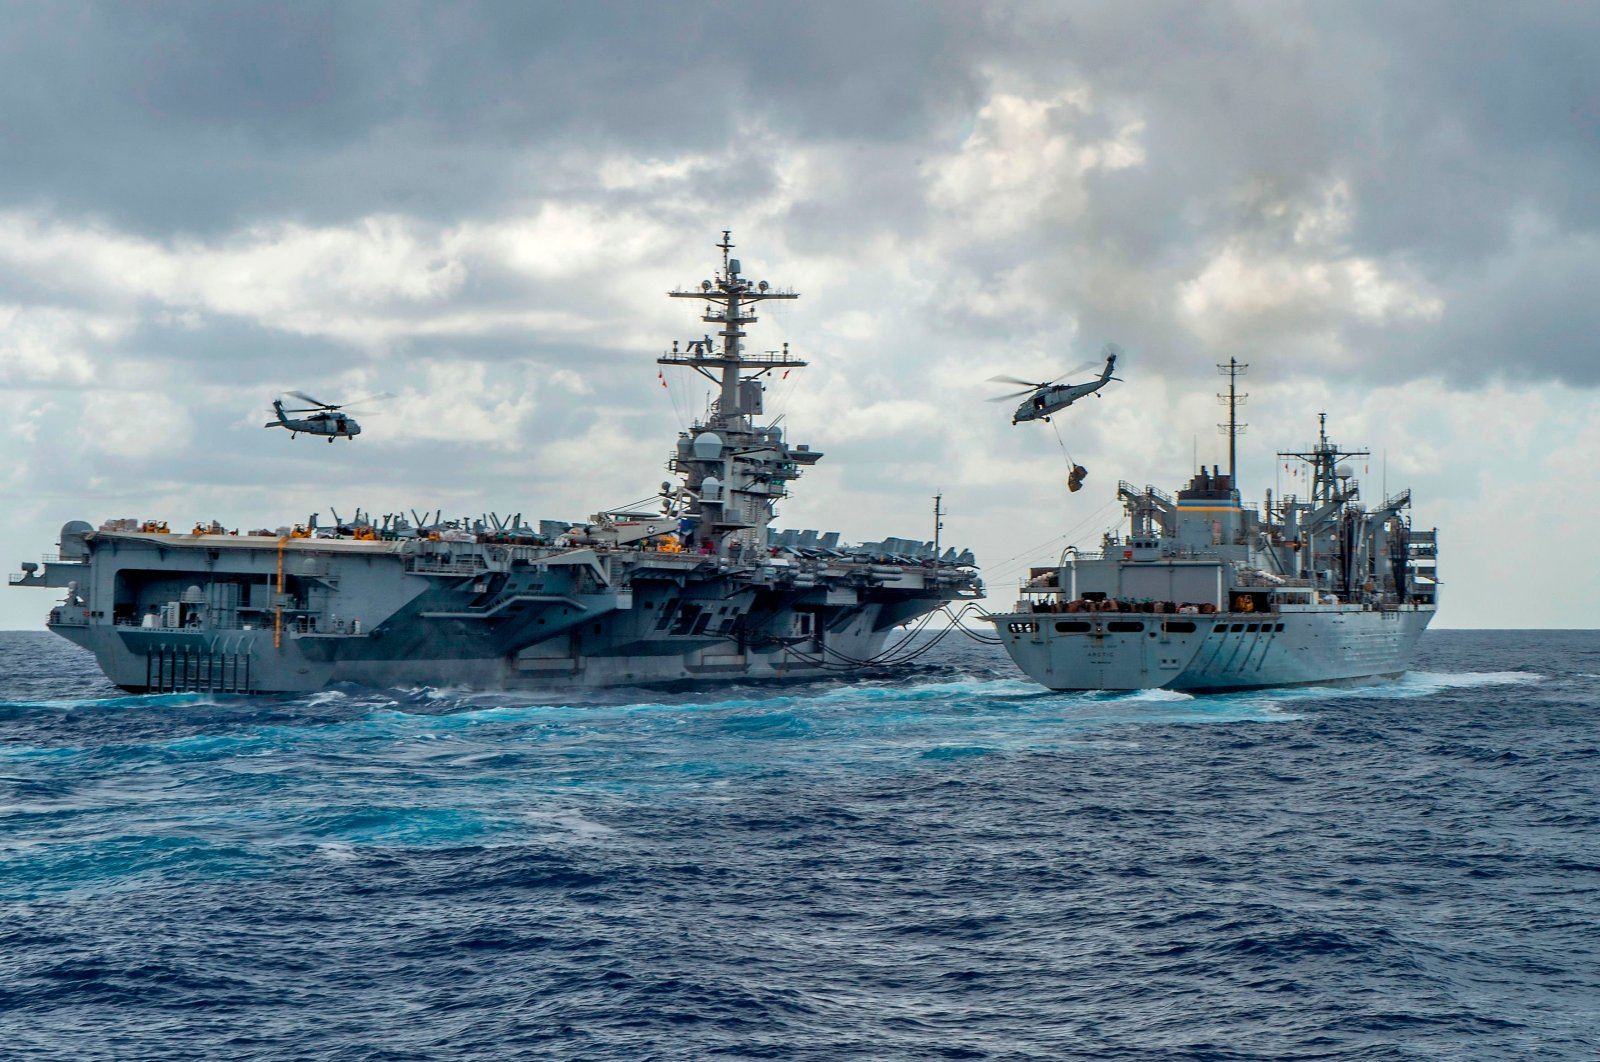 """The Nimitz-class aircraft carrier USS Abraham Lincoln (CVN 72) conducts a replenishment-at-sea with the fast combat support ship USNS Arctic (T-AOE 9), while MH-60S Sea Hawk helicopters assigned to the """"Nightdippers"""" of Helicopter Maritime Strike Squadron (HSM) 5 transfer stores between the ships, in this handout photo released by the U.S. Navy on May 8, 2019. (AFP Photo)"""